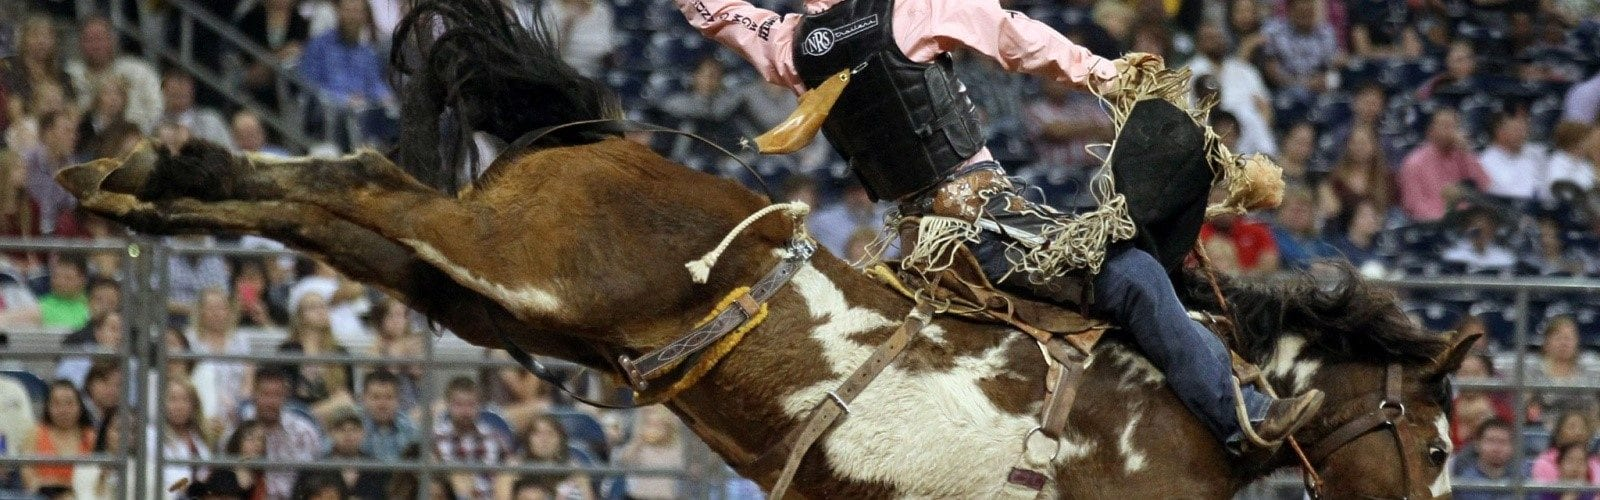 Houston Livestock Show, Rodeo Scores Top Spot On Weekend Best-Sellers